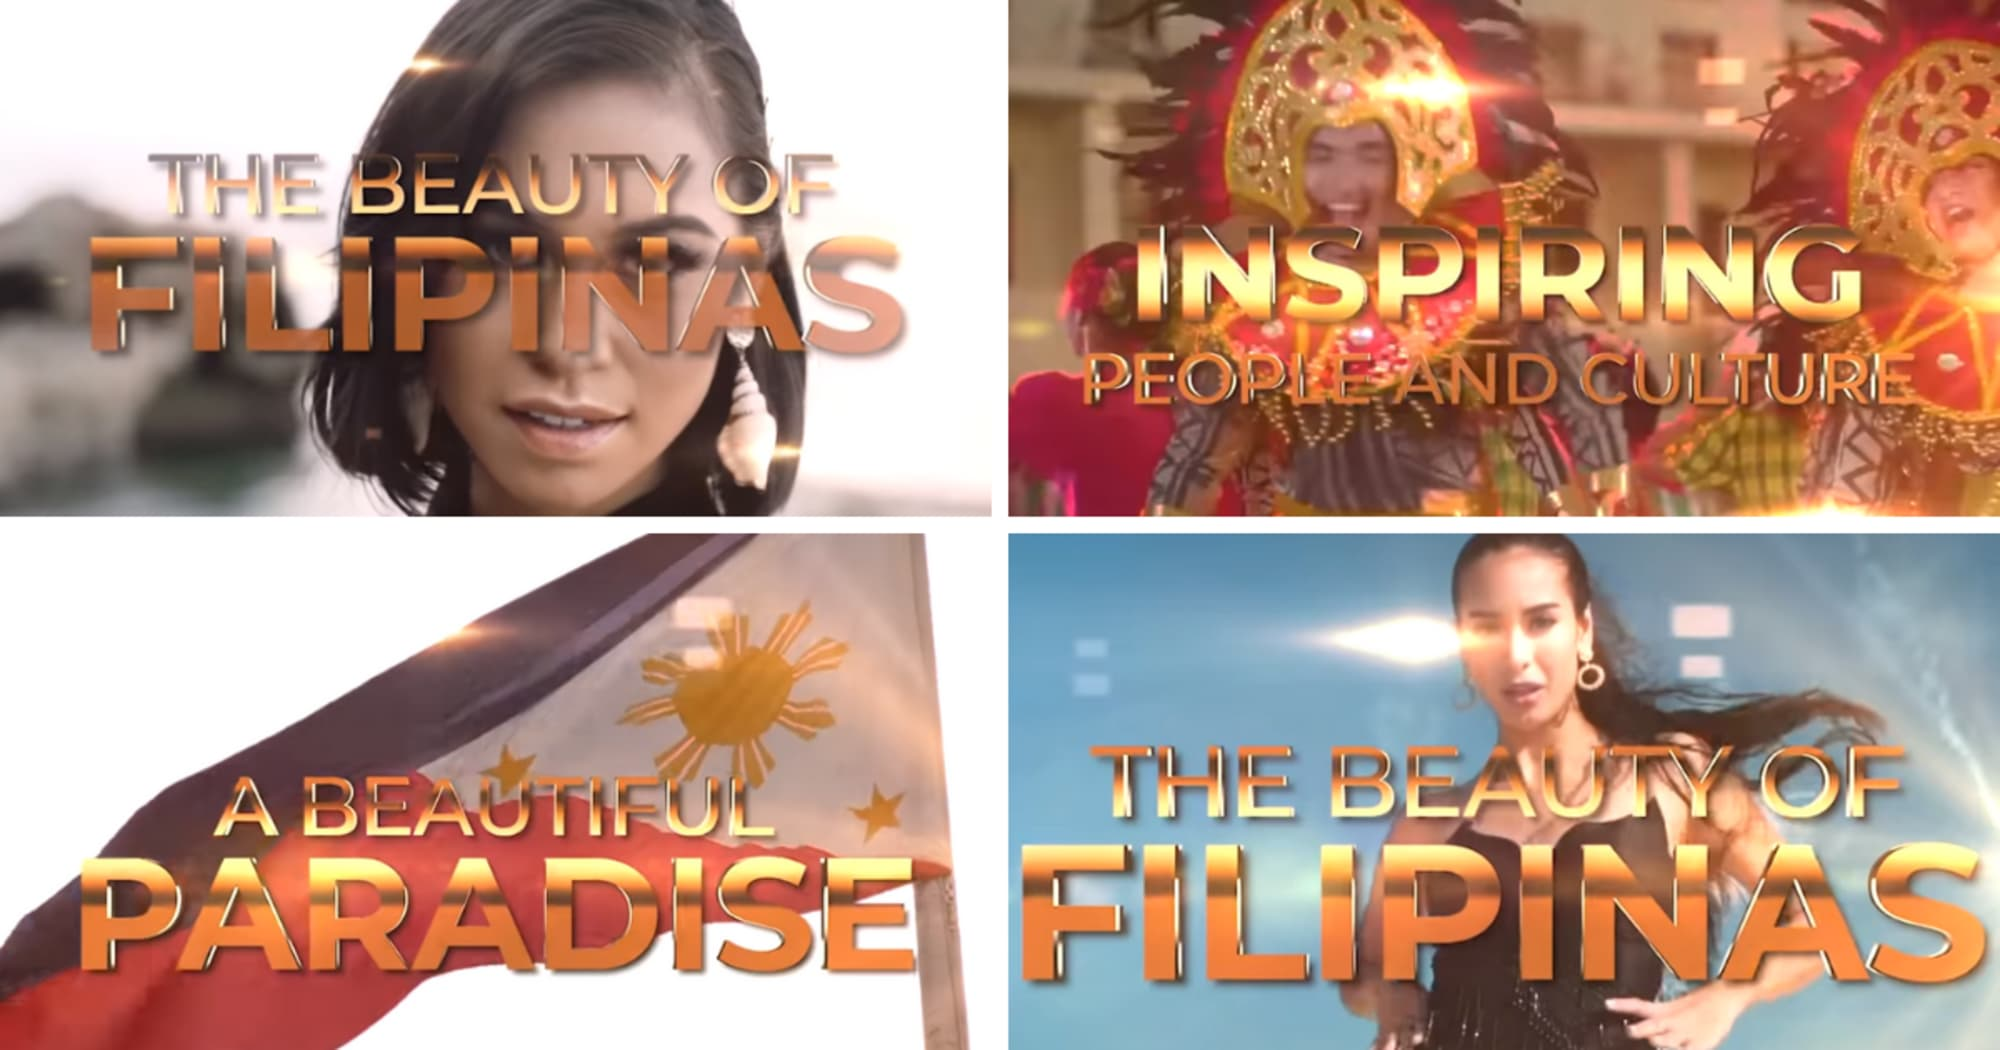 Tourism Video of the Miss Universe Philippines Candidates, shows not only their beauty but also the wonders of their hometown